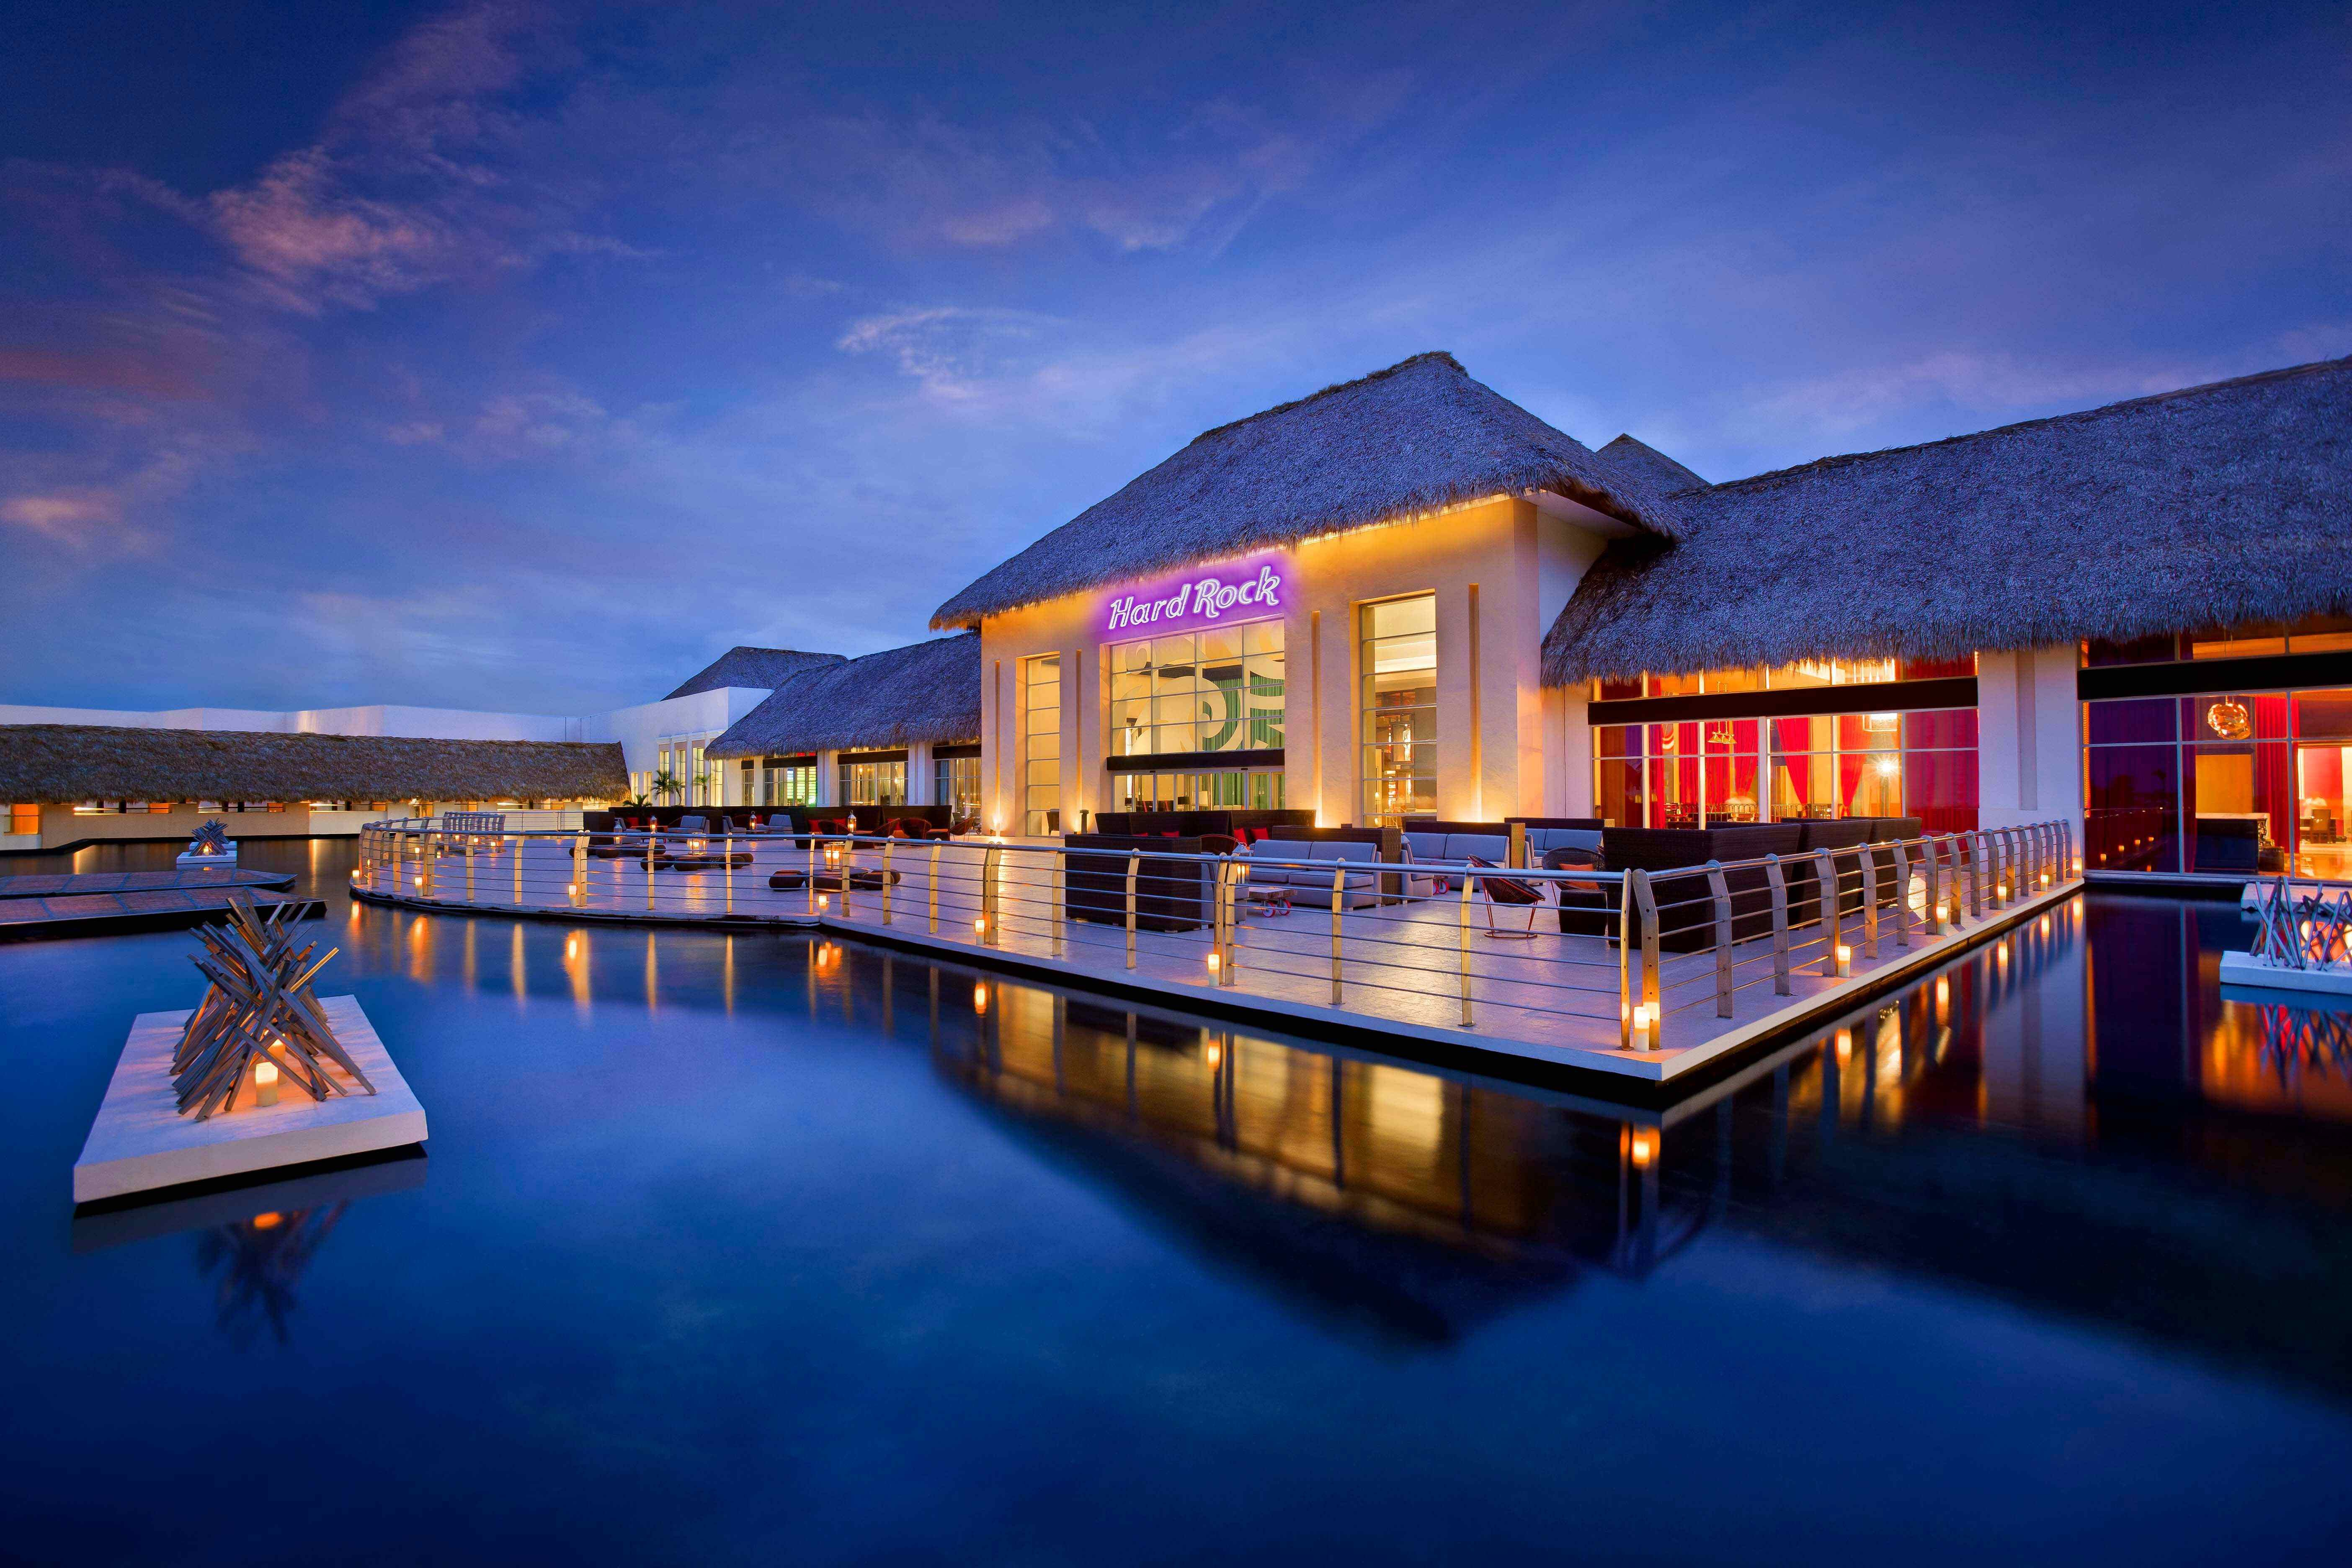 hard rock cafe and Casino in Punta Cana